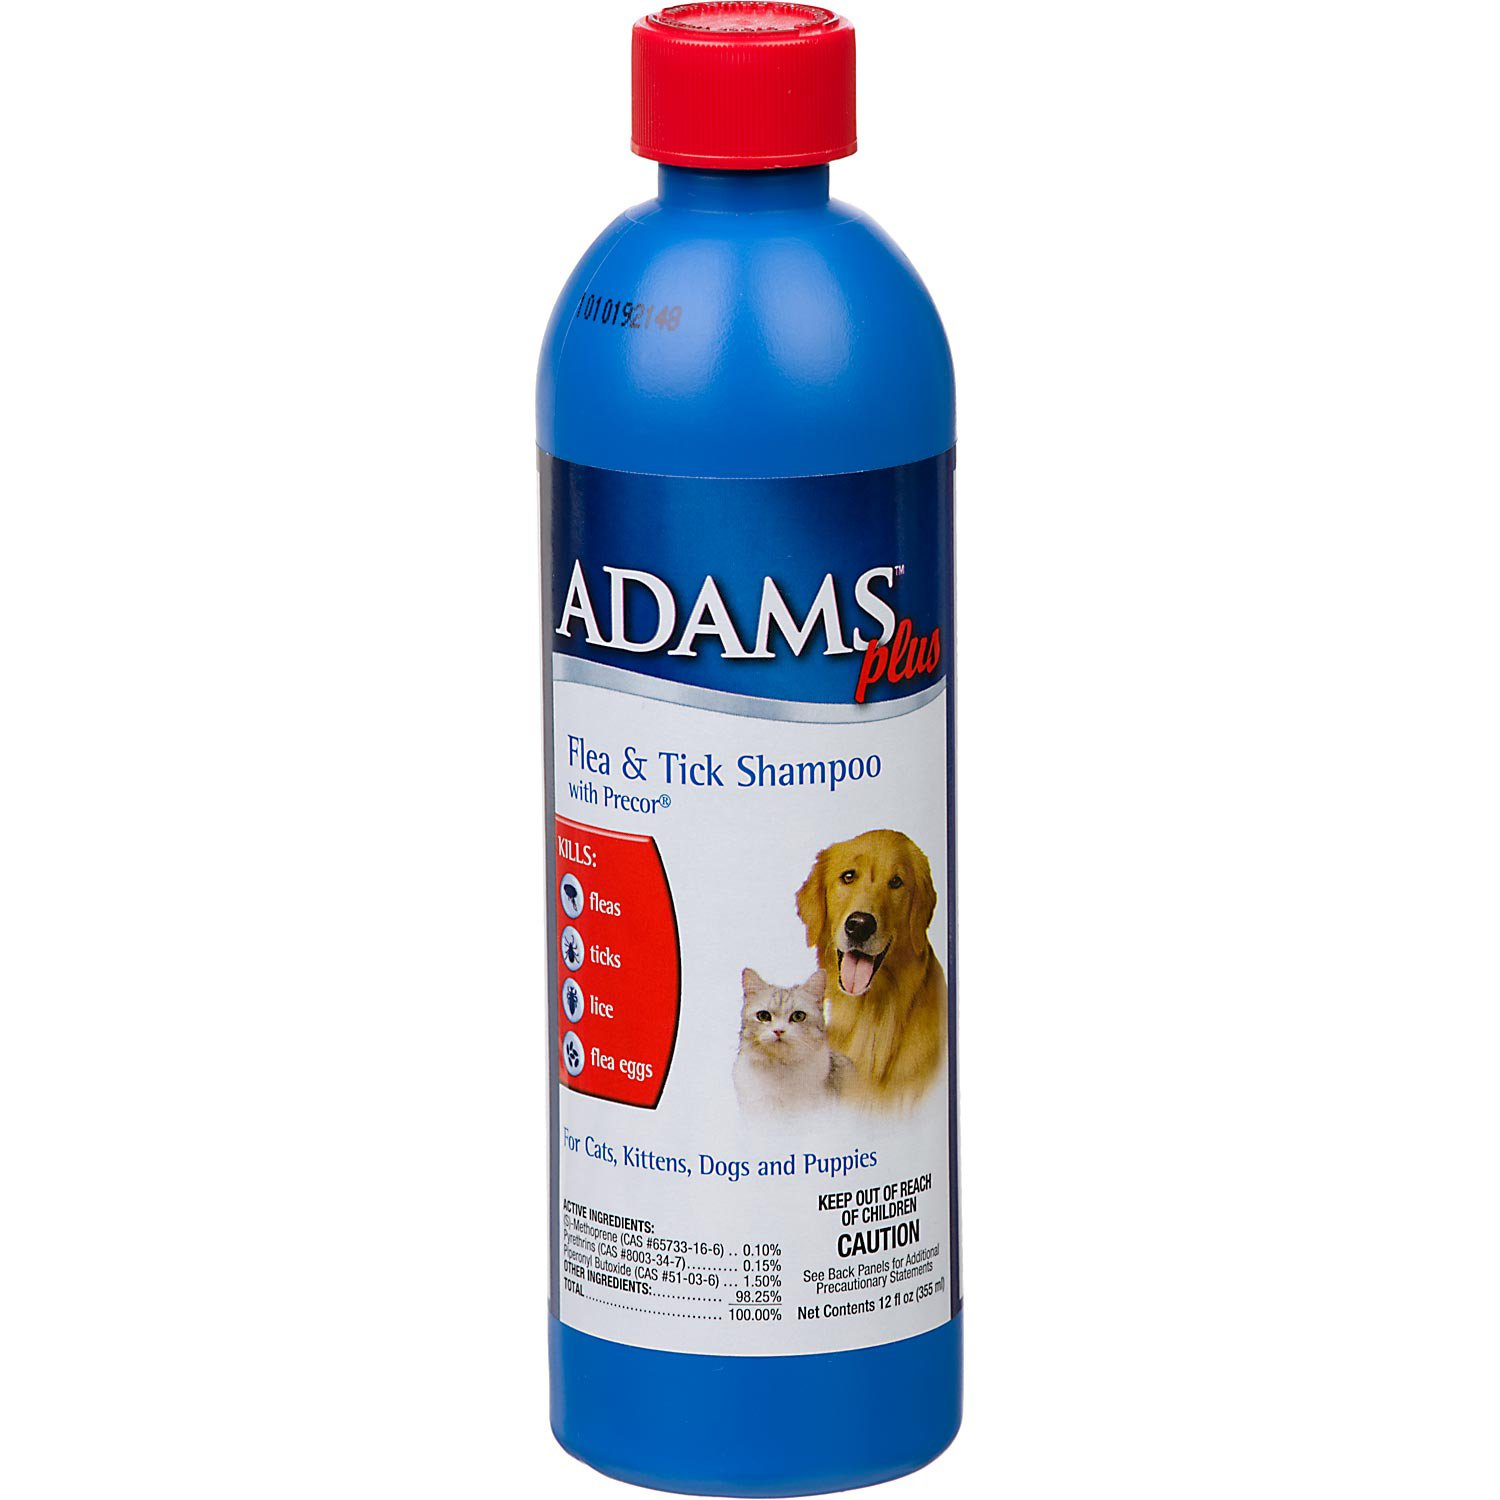 Adams Plus Flea Tick Shampoo With Precor For Dogs And Cats Petco